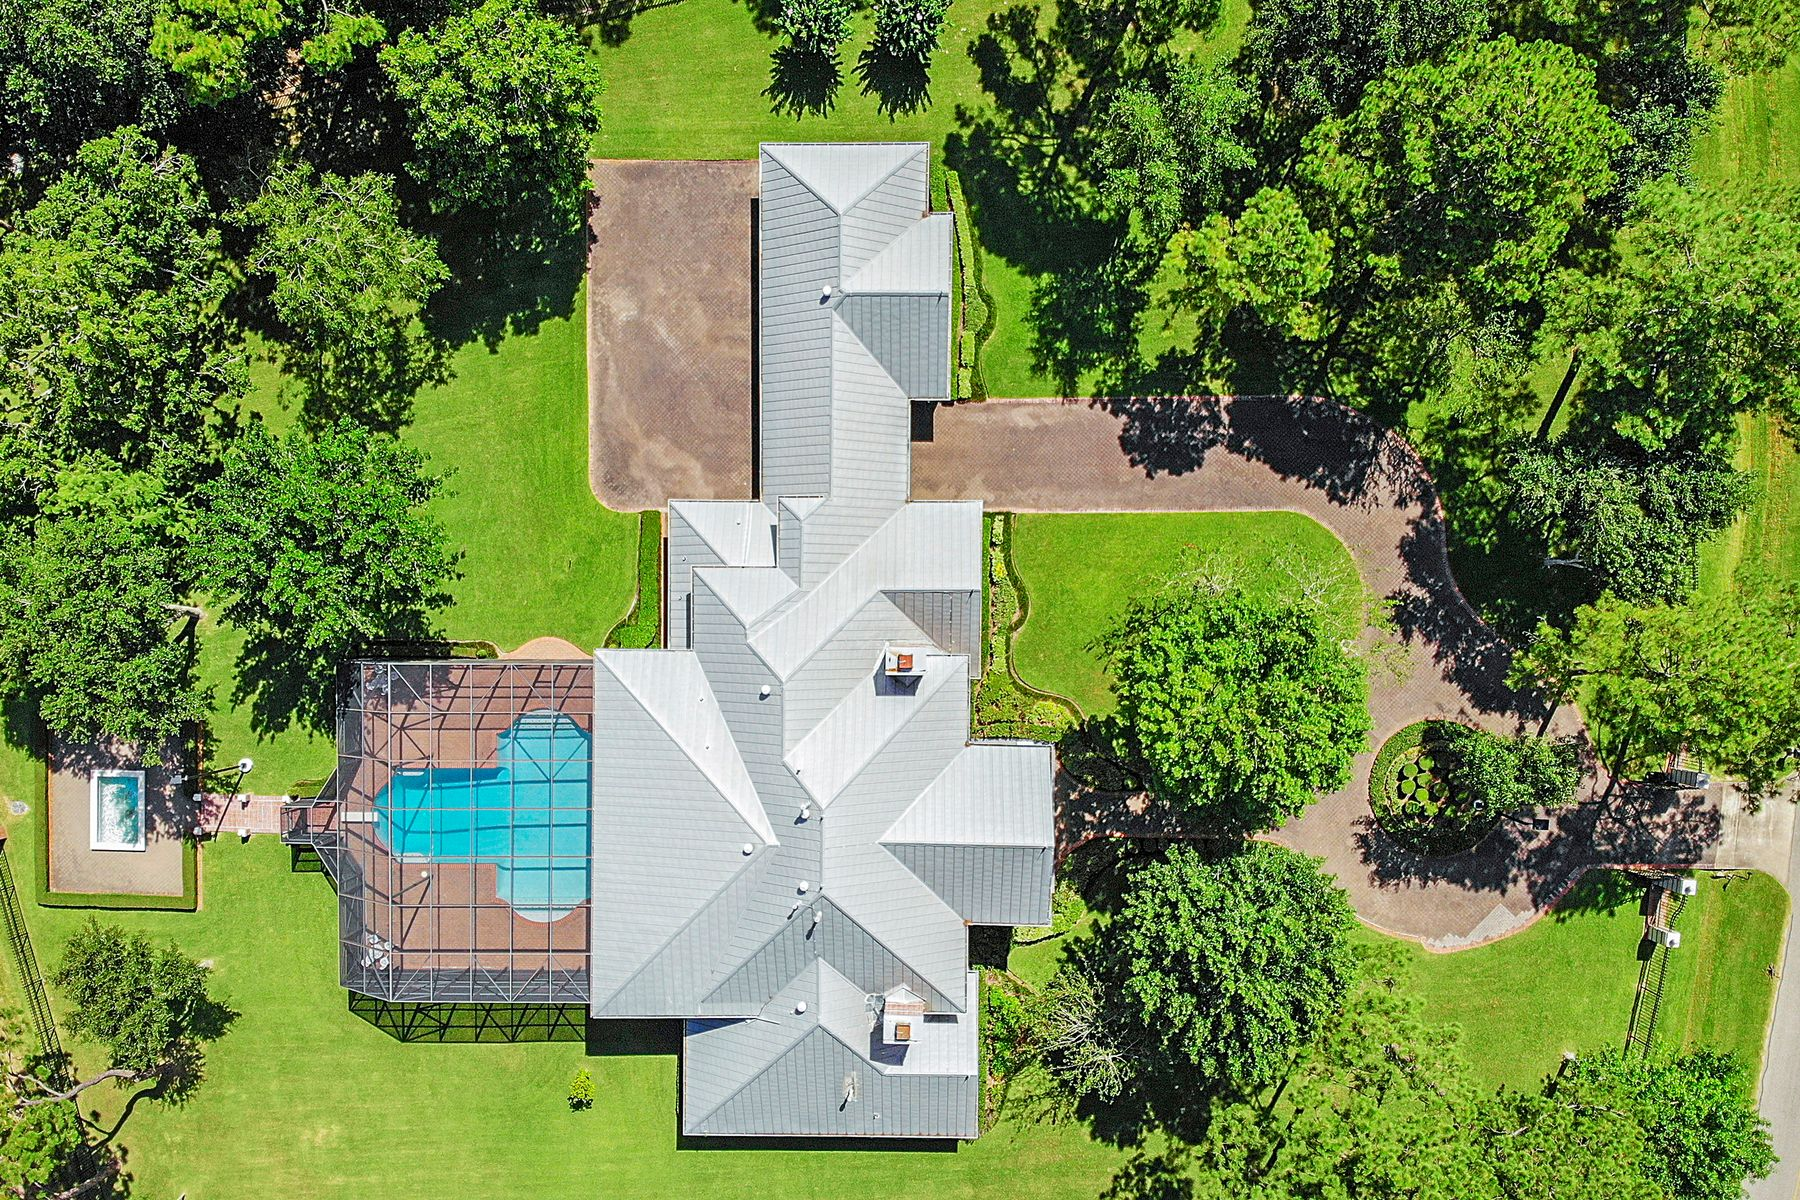 Vivienda unifamiliar En venta Friendswood, Texas 1109 Cowards Creek Drive